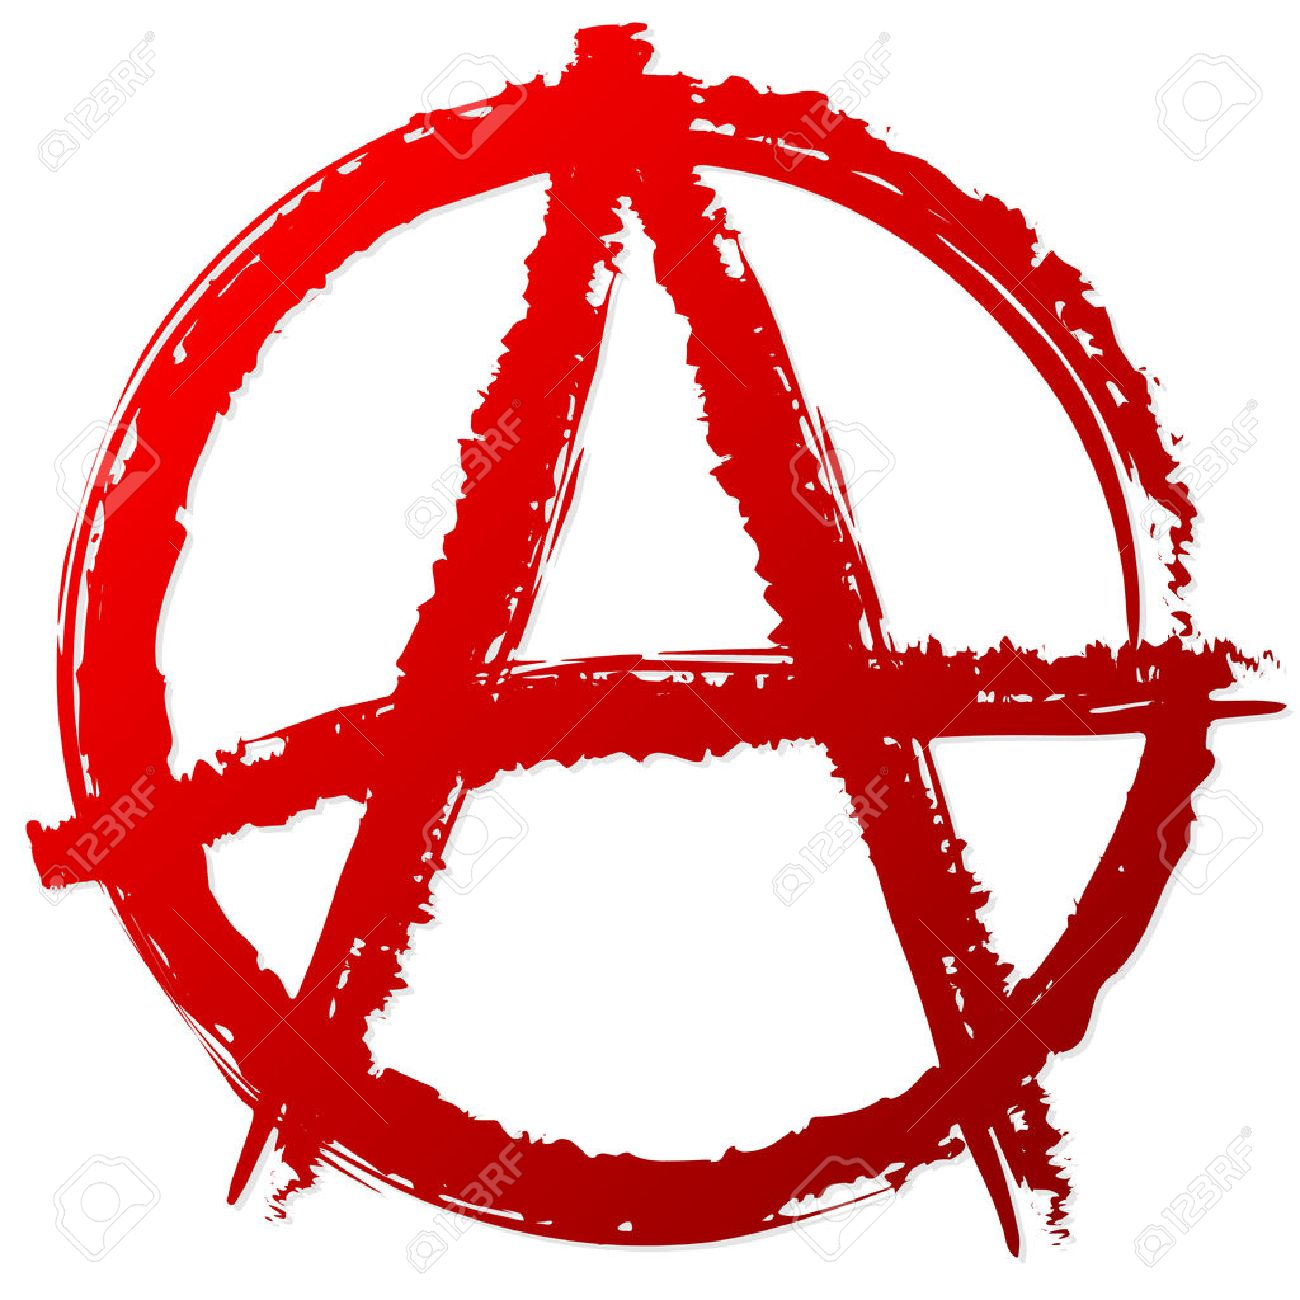 Anarchy images stock pictures royalty free anarchy photos and anarchy symbol or sign anarchy punk anarchism anarchist antisocial vector symbol biocorpaavc